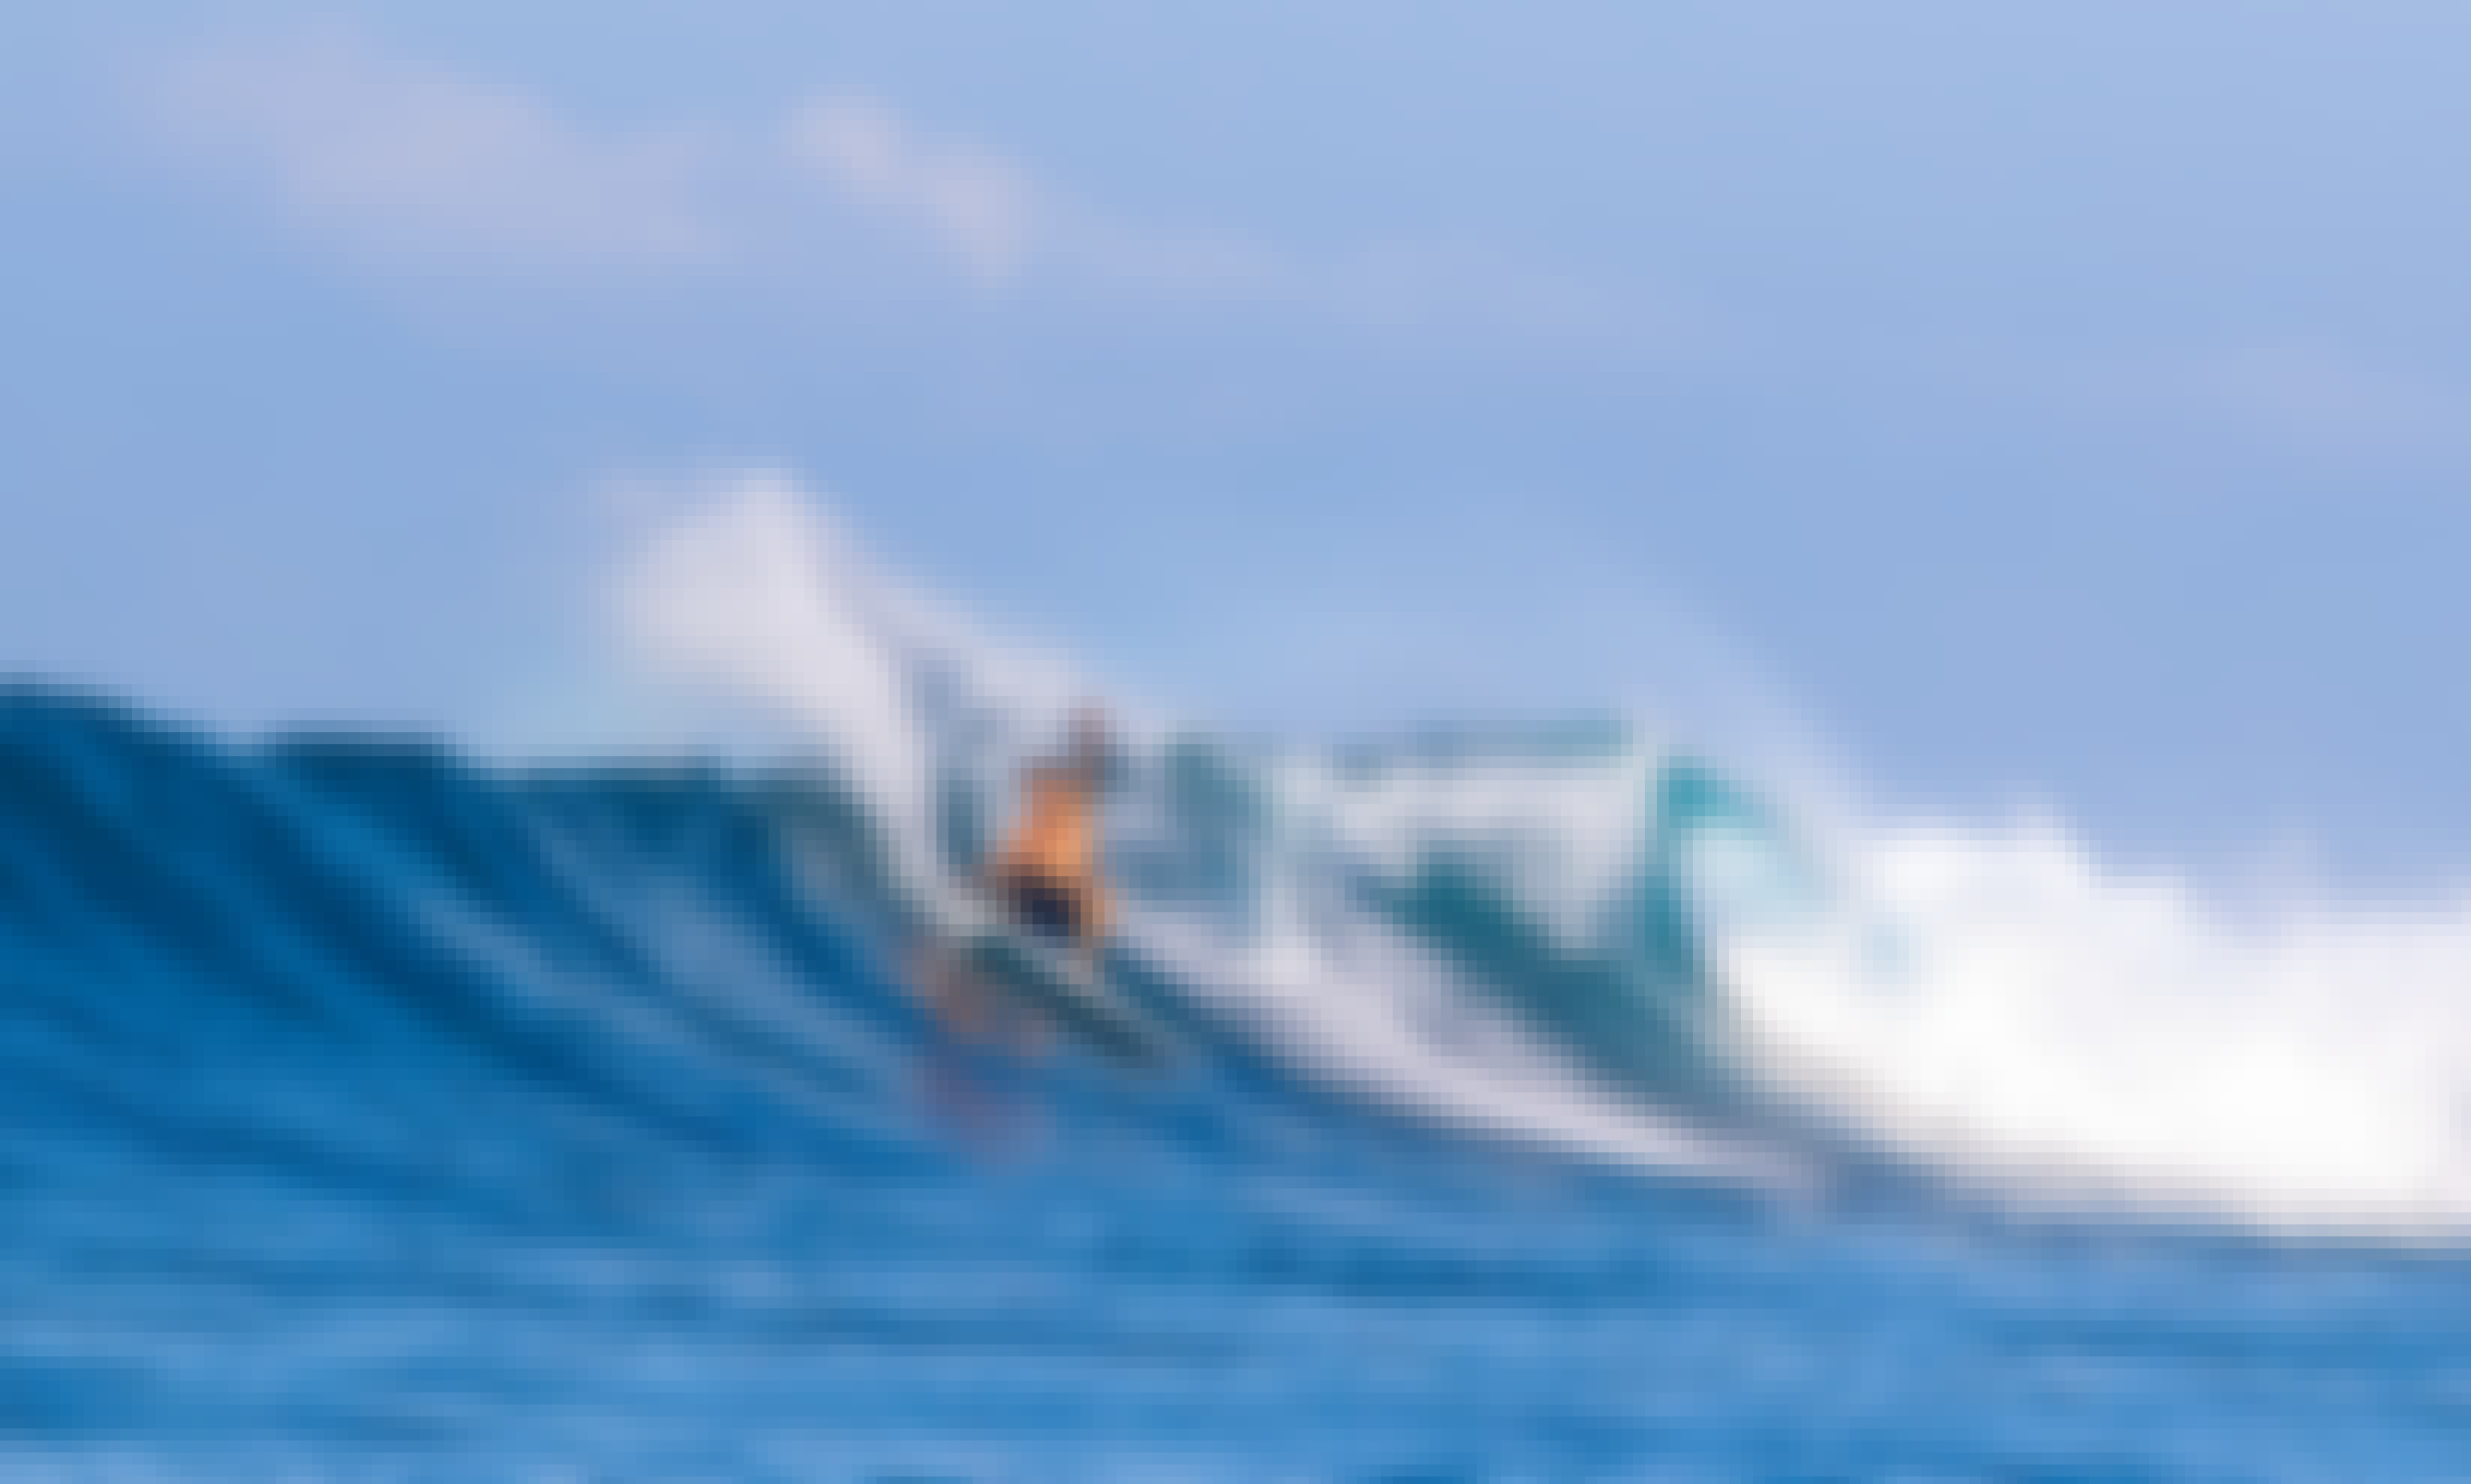 """Our Surf Charter """"Jiwa Alam"""" is anchored and we'd love to take you on our next surf adventure trip"""